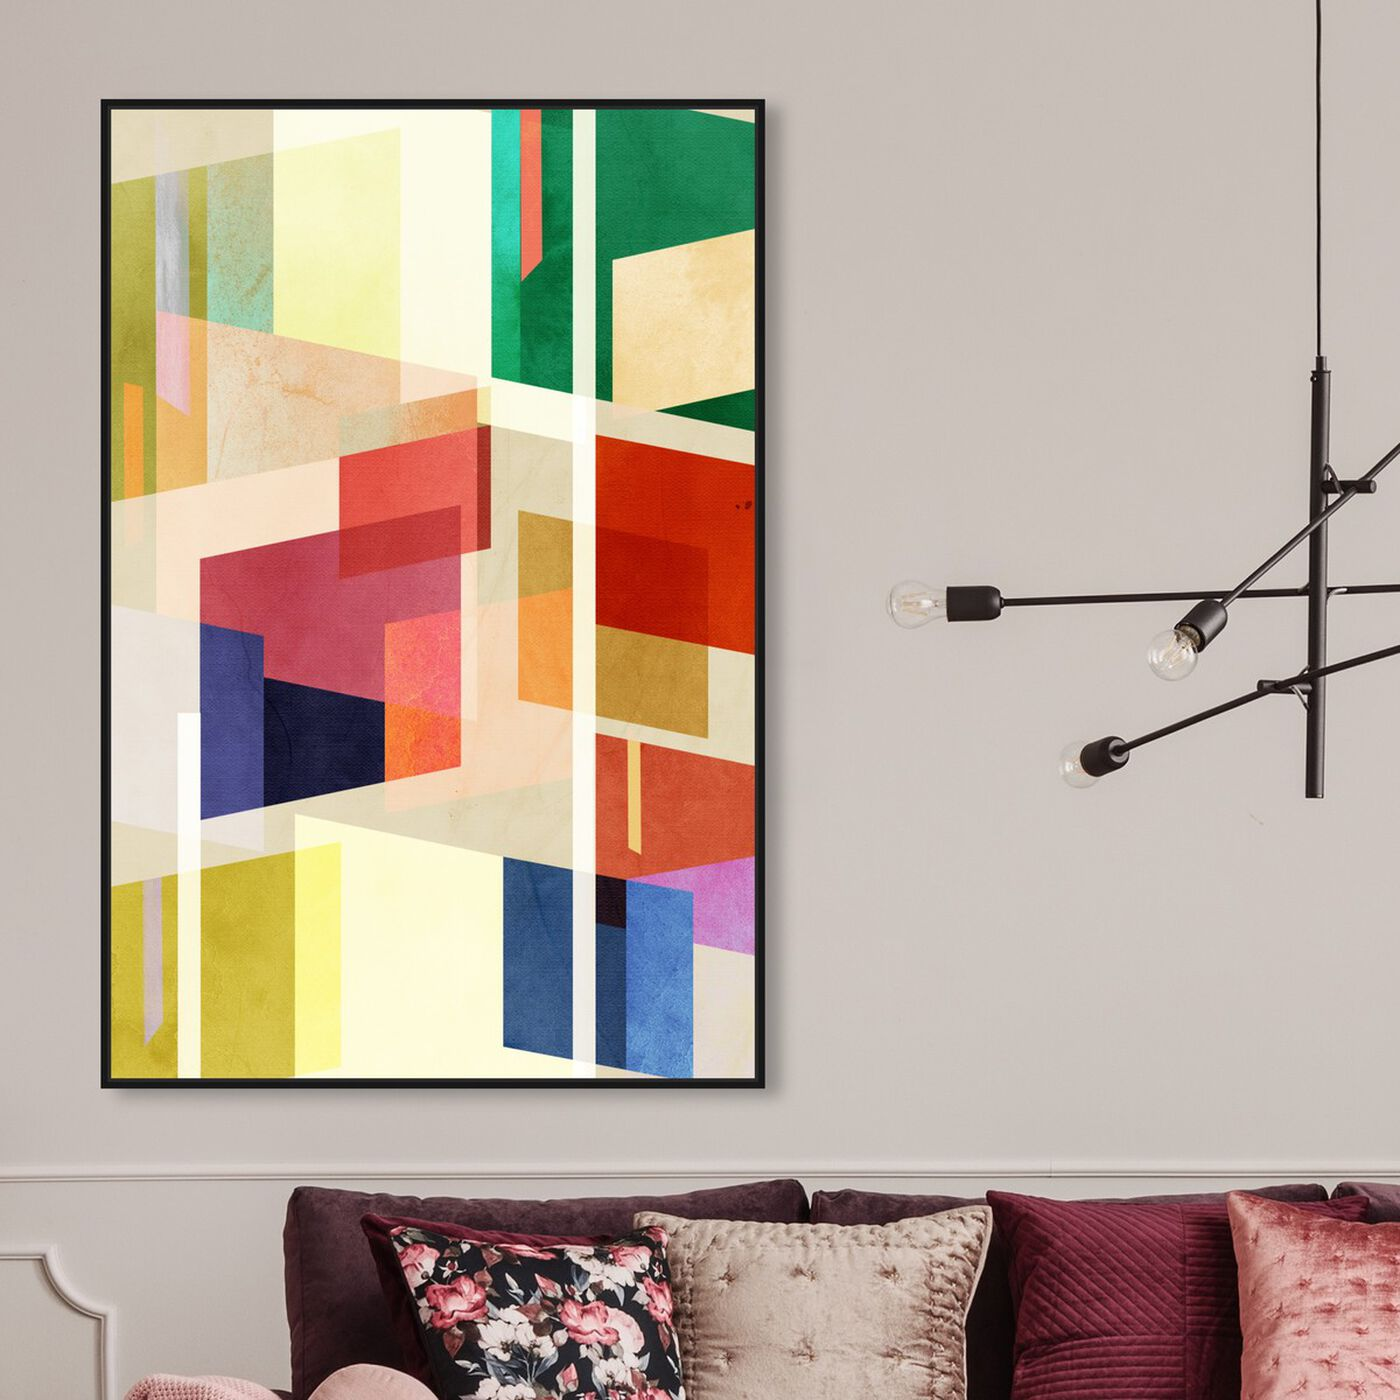 Hanging view of Midcentury Square Abstract featuring abstract and geometric art.